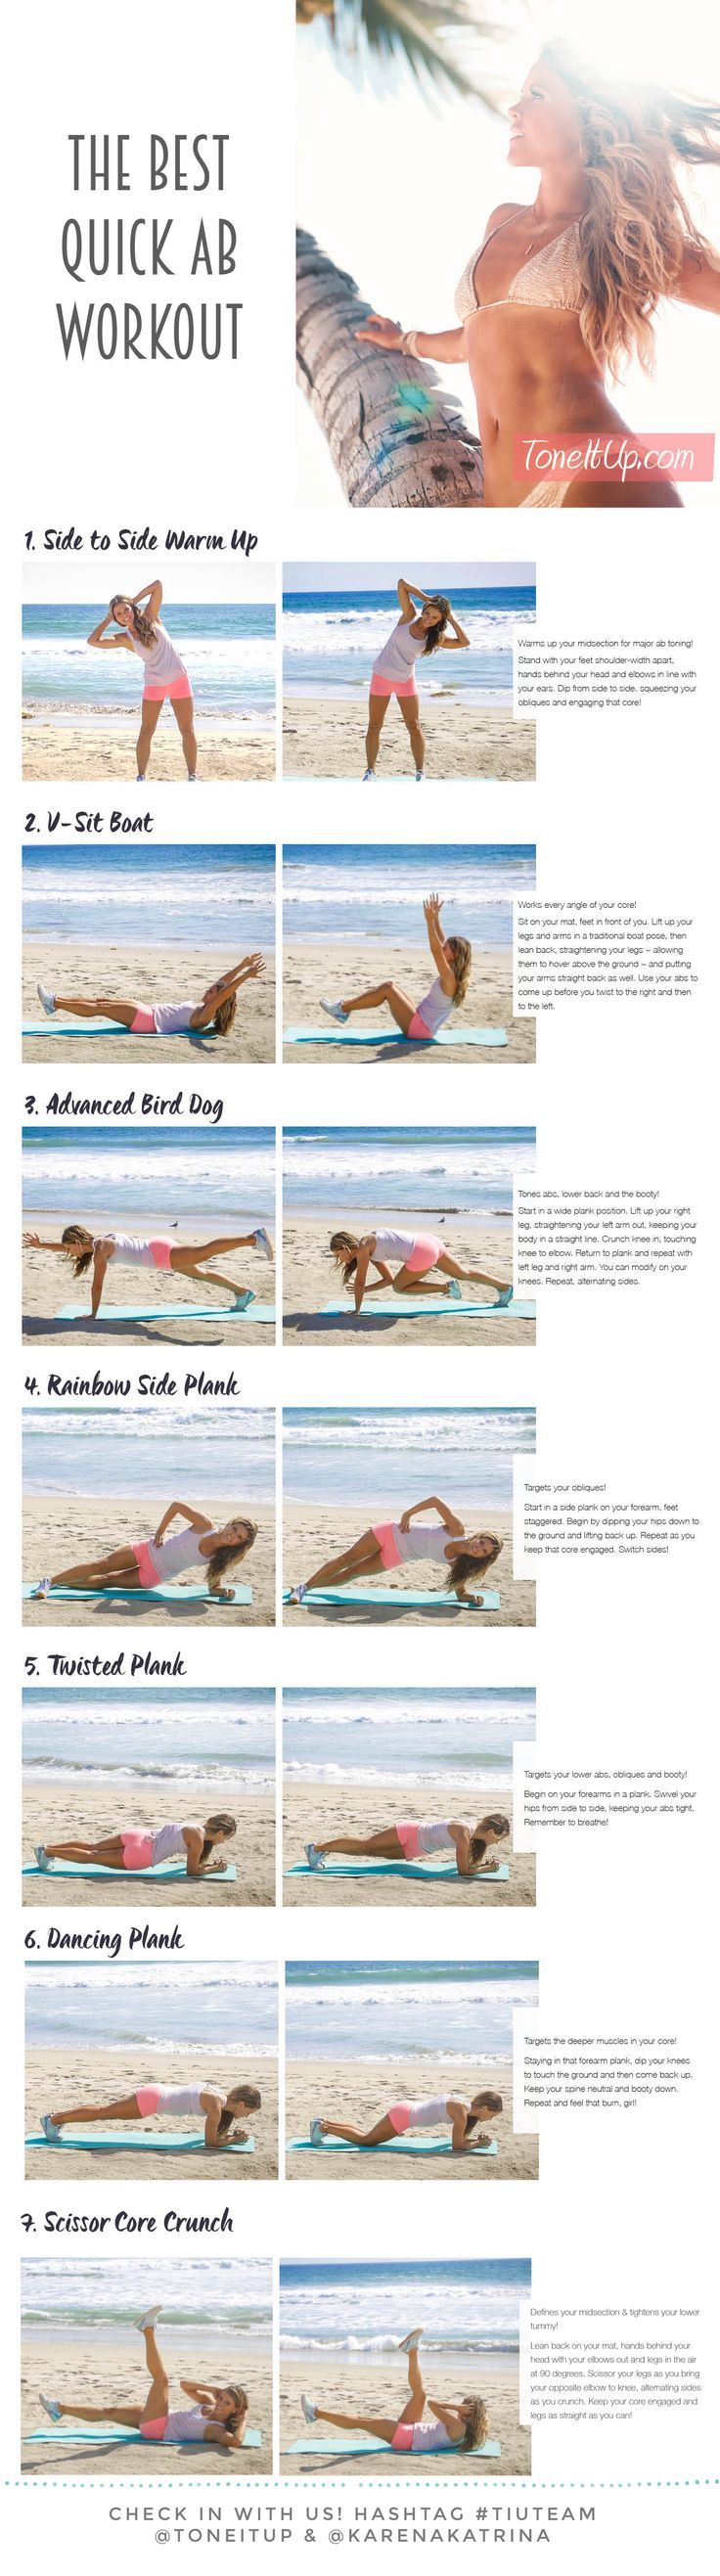 Workout with us!! Summer abs in 7 minutes! http://leanwife.com/body-sculpting-fitness-workouts-for-women-101/